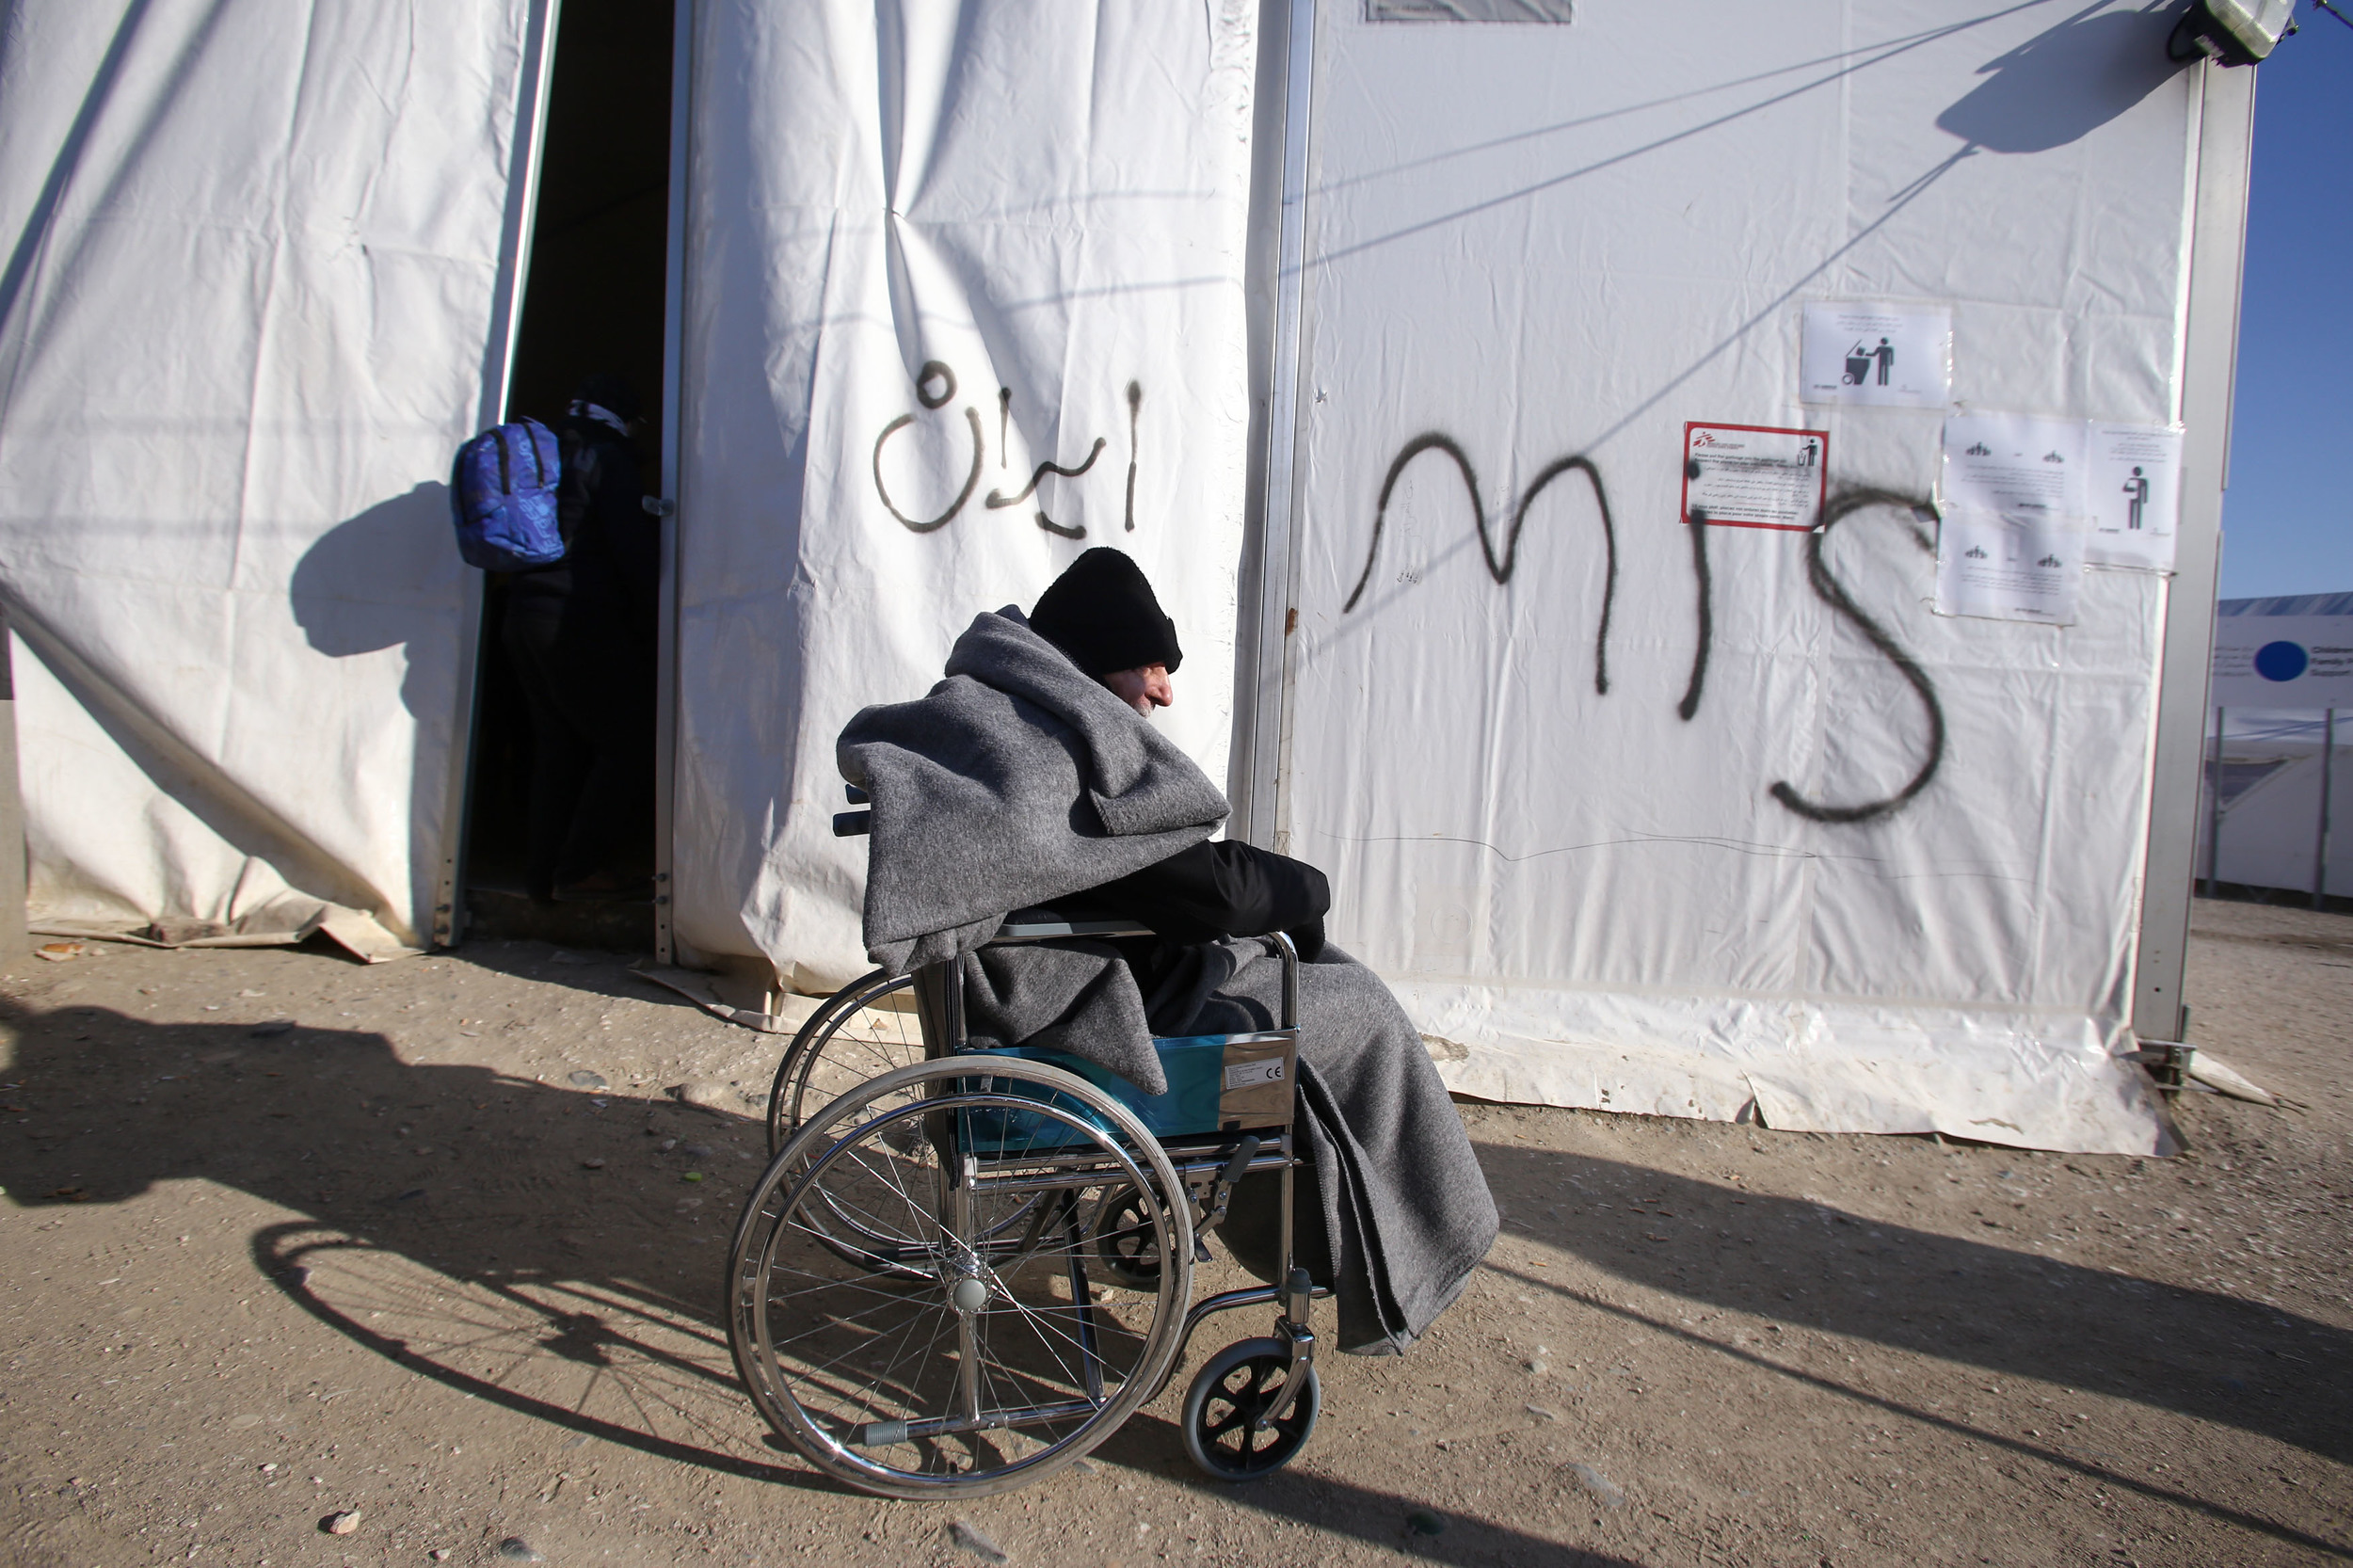 A disabled refugee, bundled up against the cold, outside one of the tents MSF has been allowed to erect outside the petrol station that has become a holding area for refugees and migrants trying to reach the border